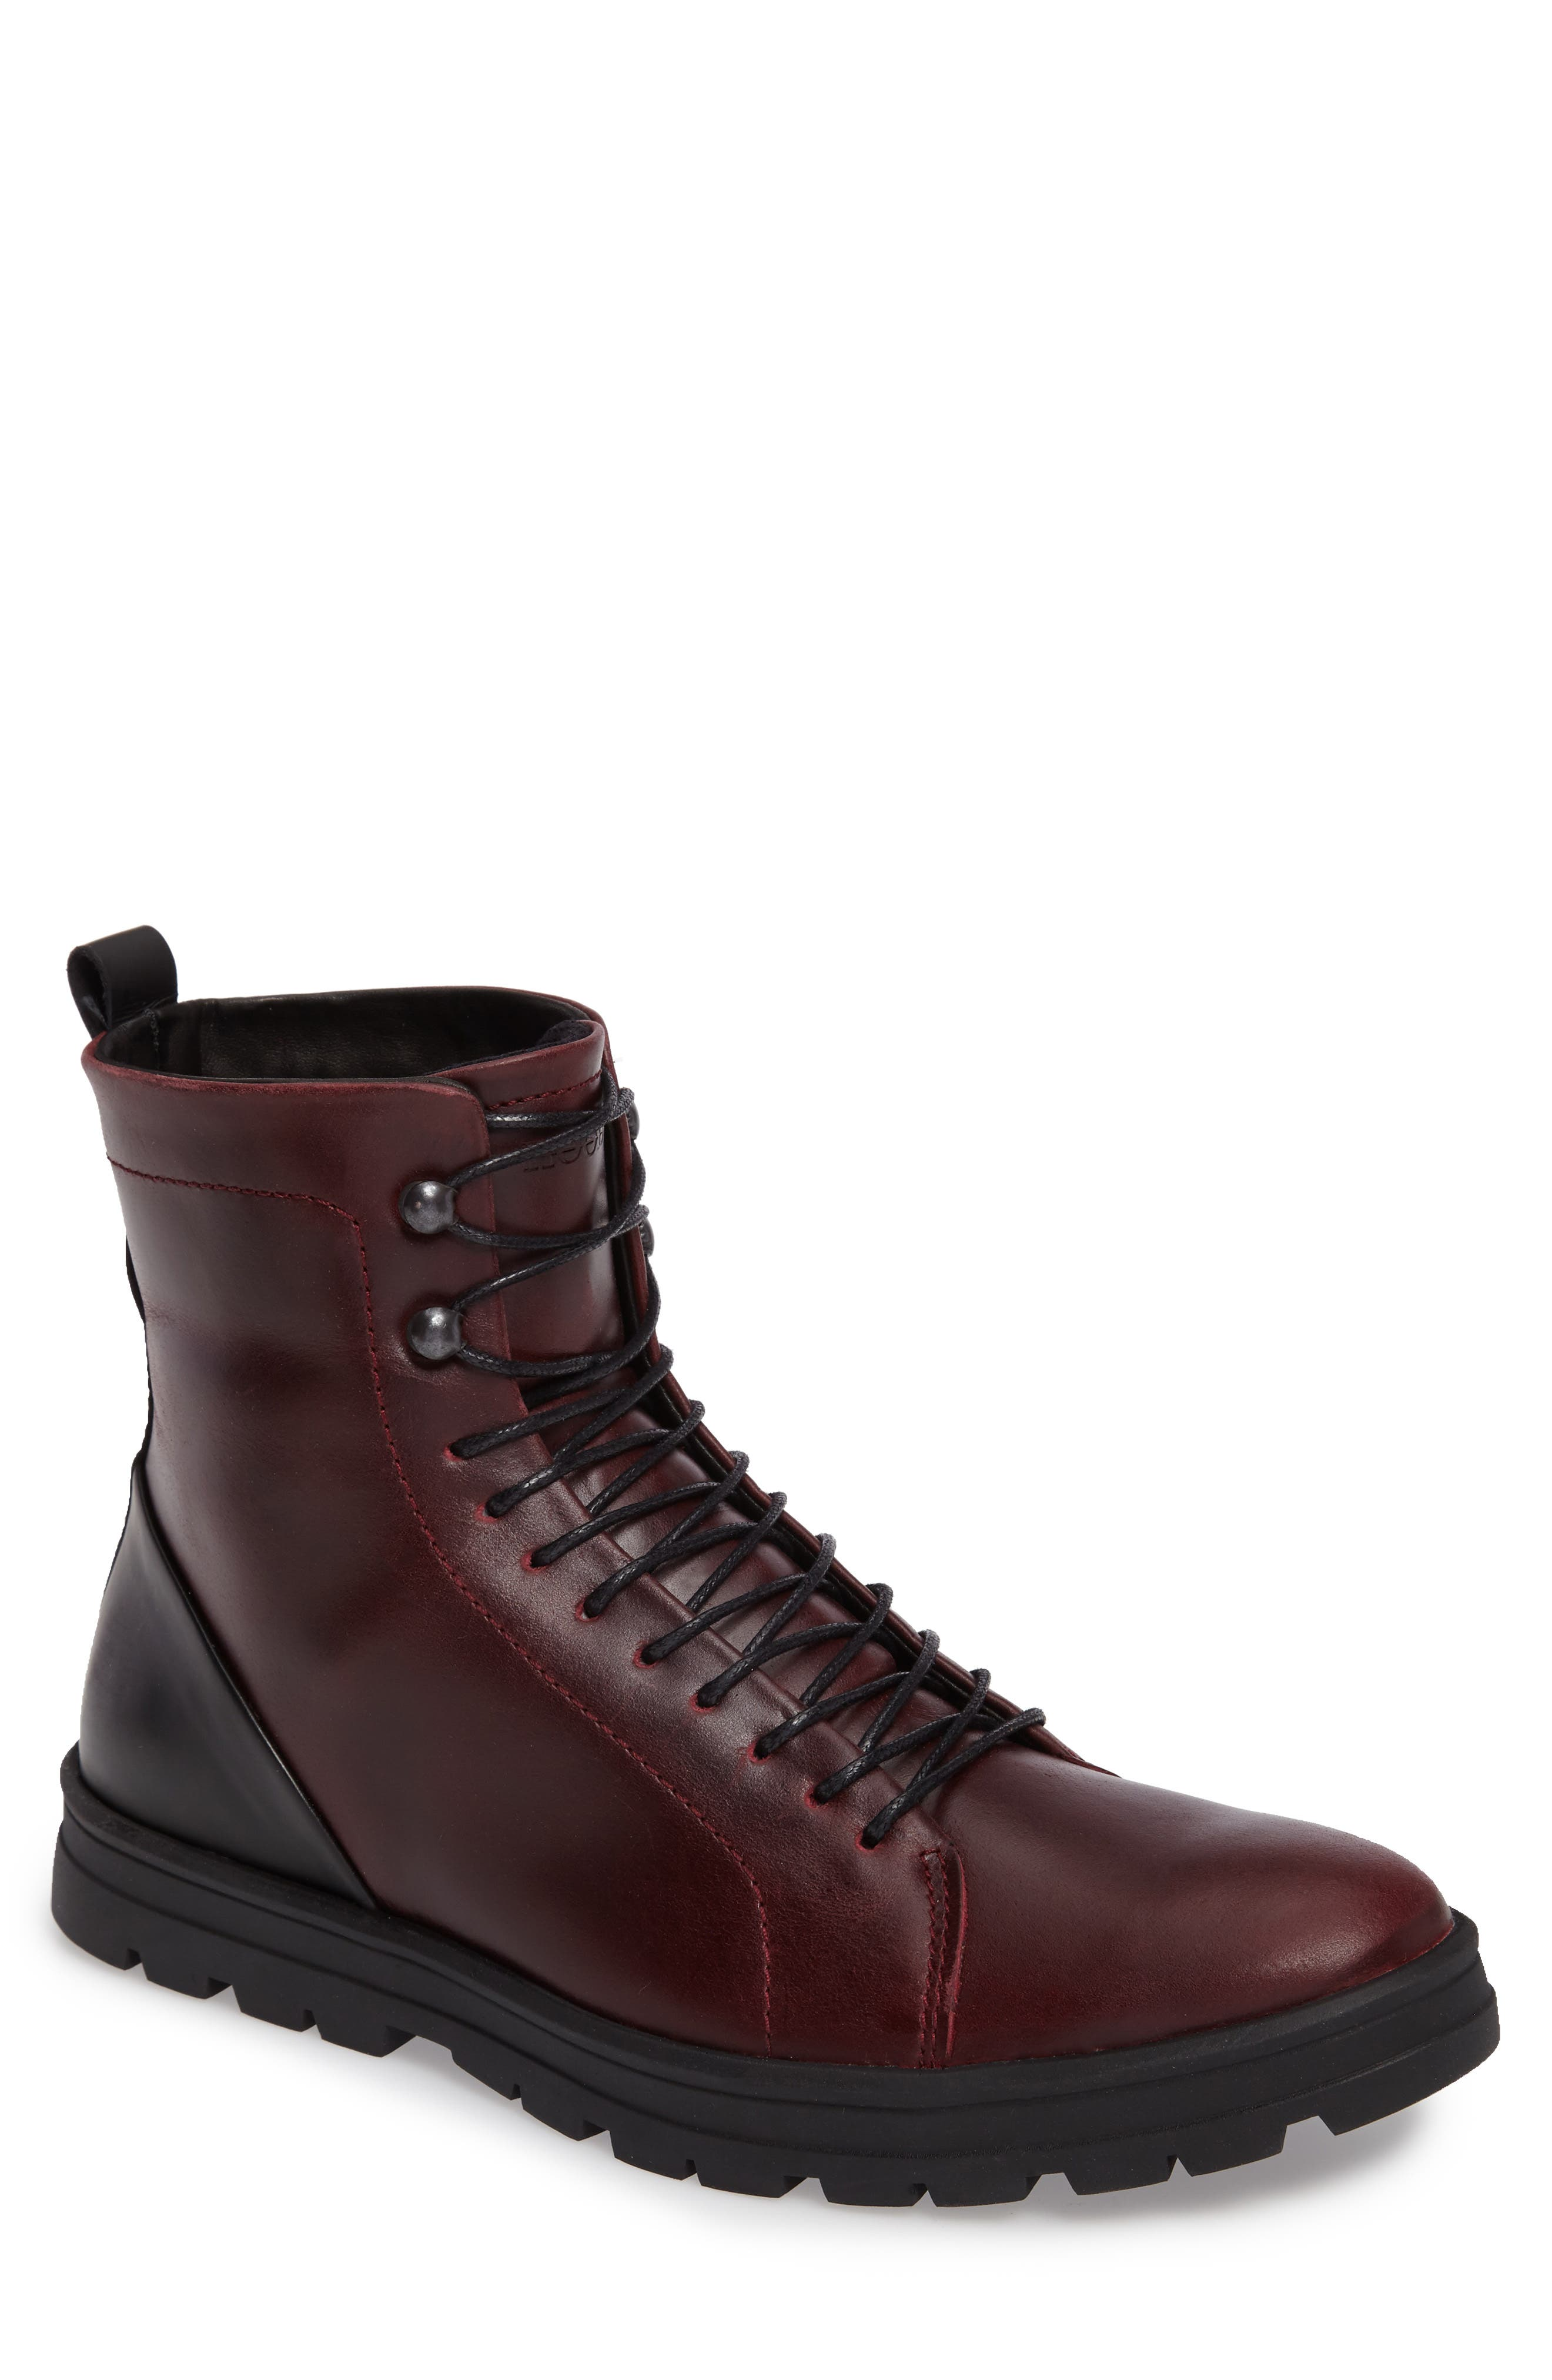 Hudson Waterproof Tall Boot,                             Main thumbnail 1, color,                             Bordeaux Leather